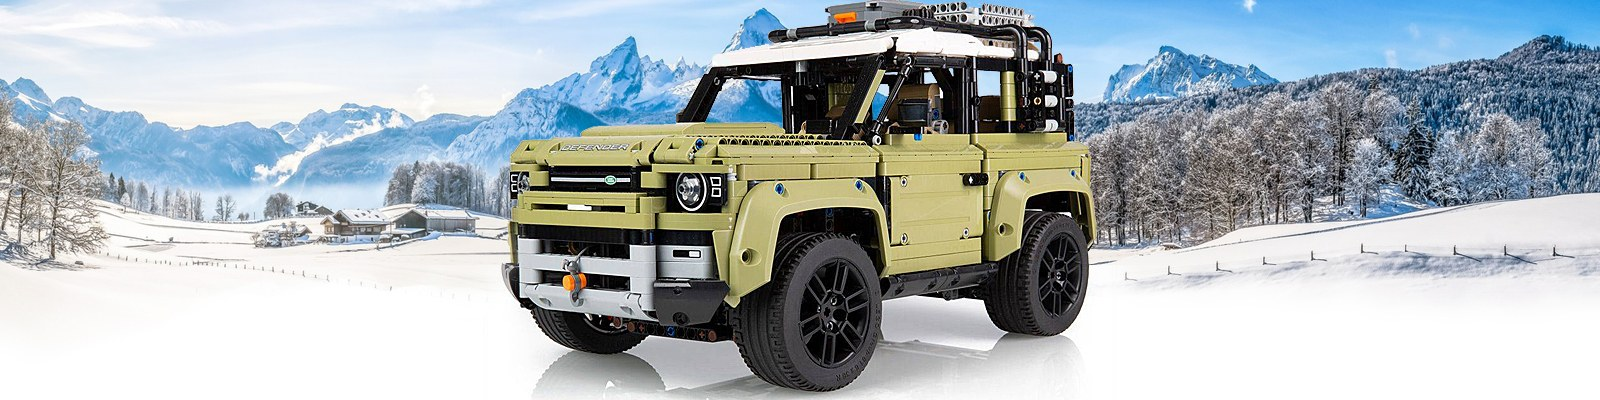 LEGO Technic Land Rover Defender 42110